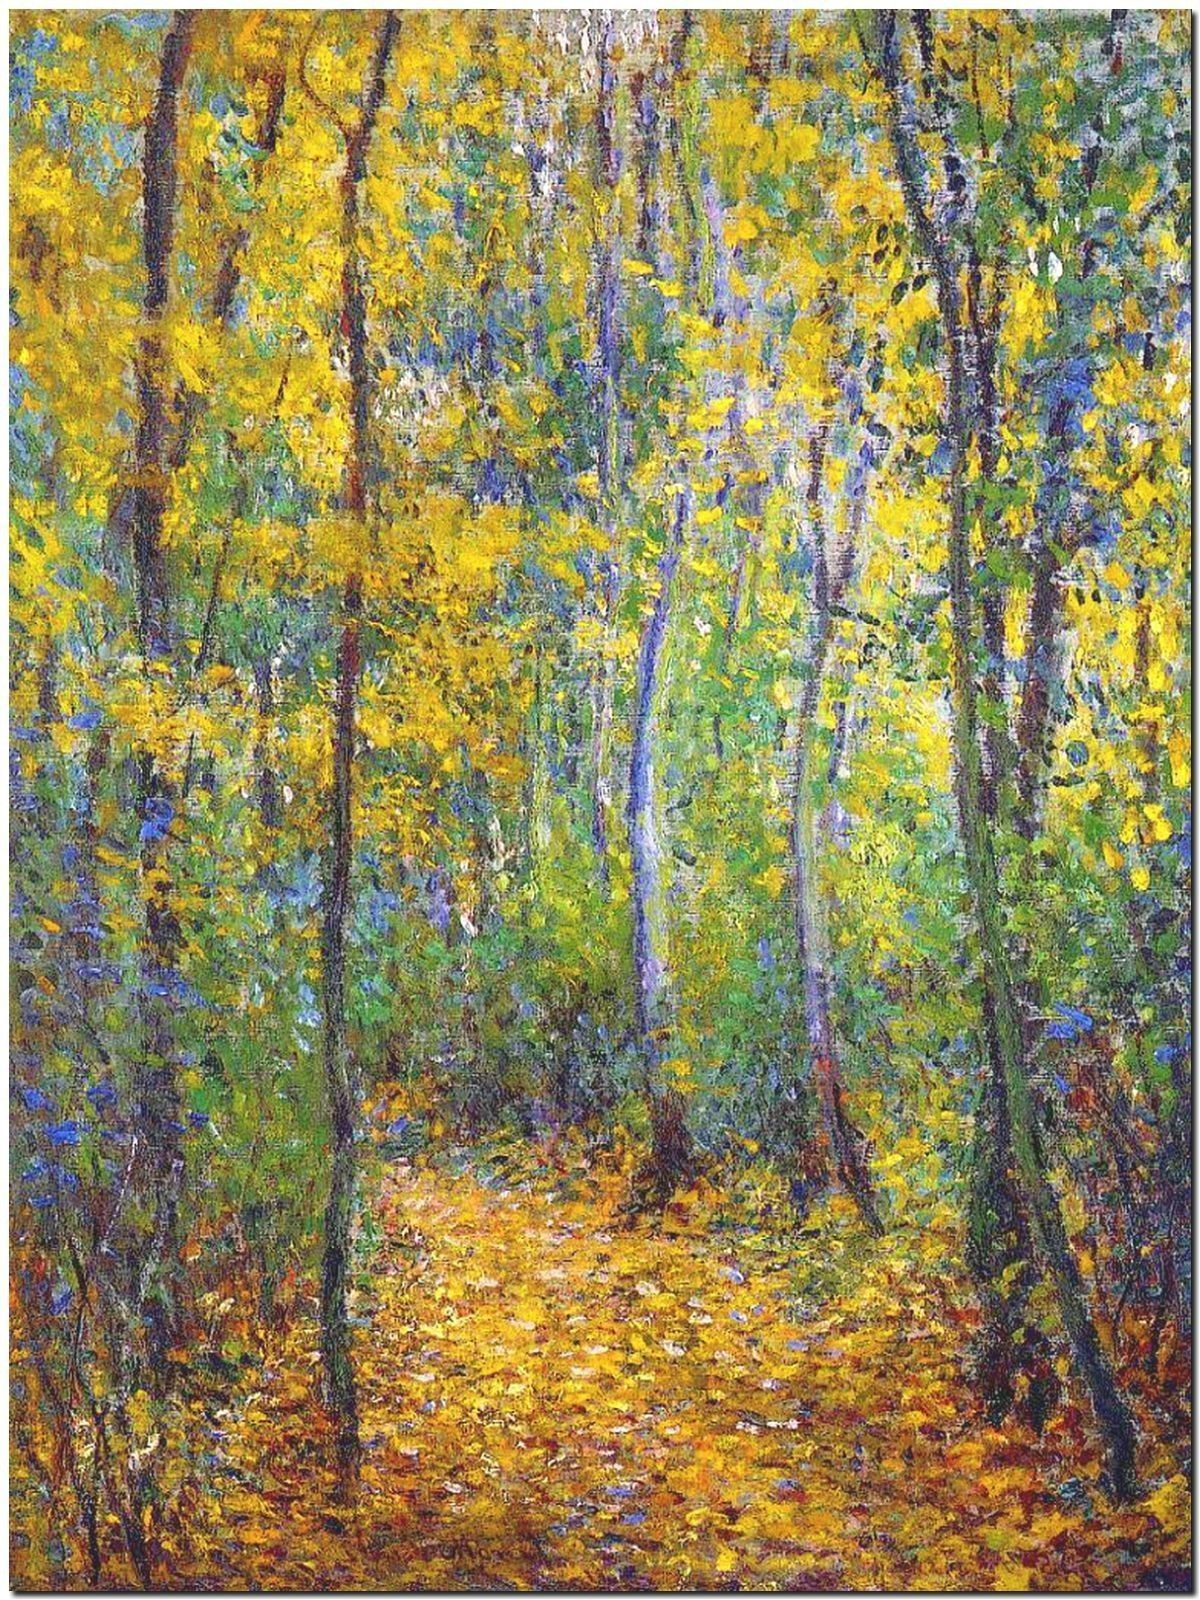 178974 CLAUDE MONET WOOD LANE DECOR WALL PRINT POSTER CA